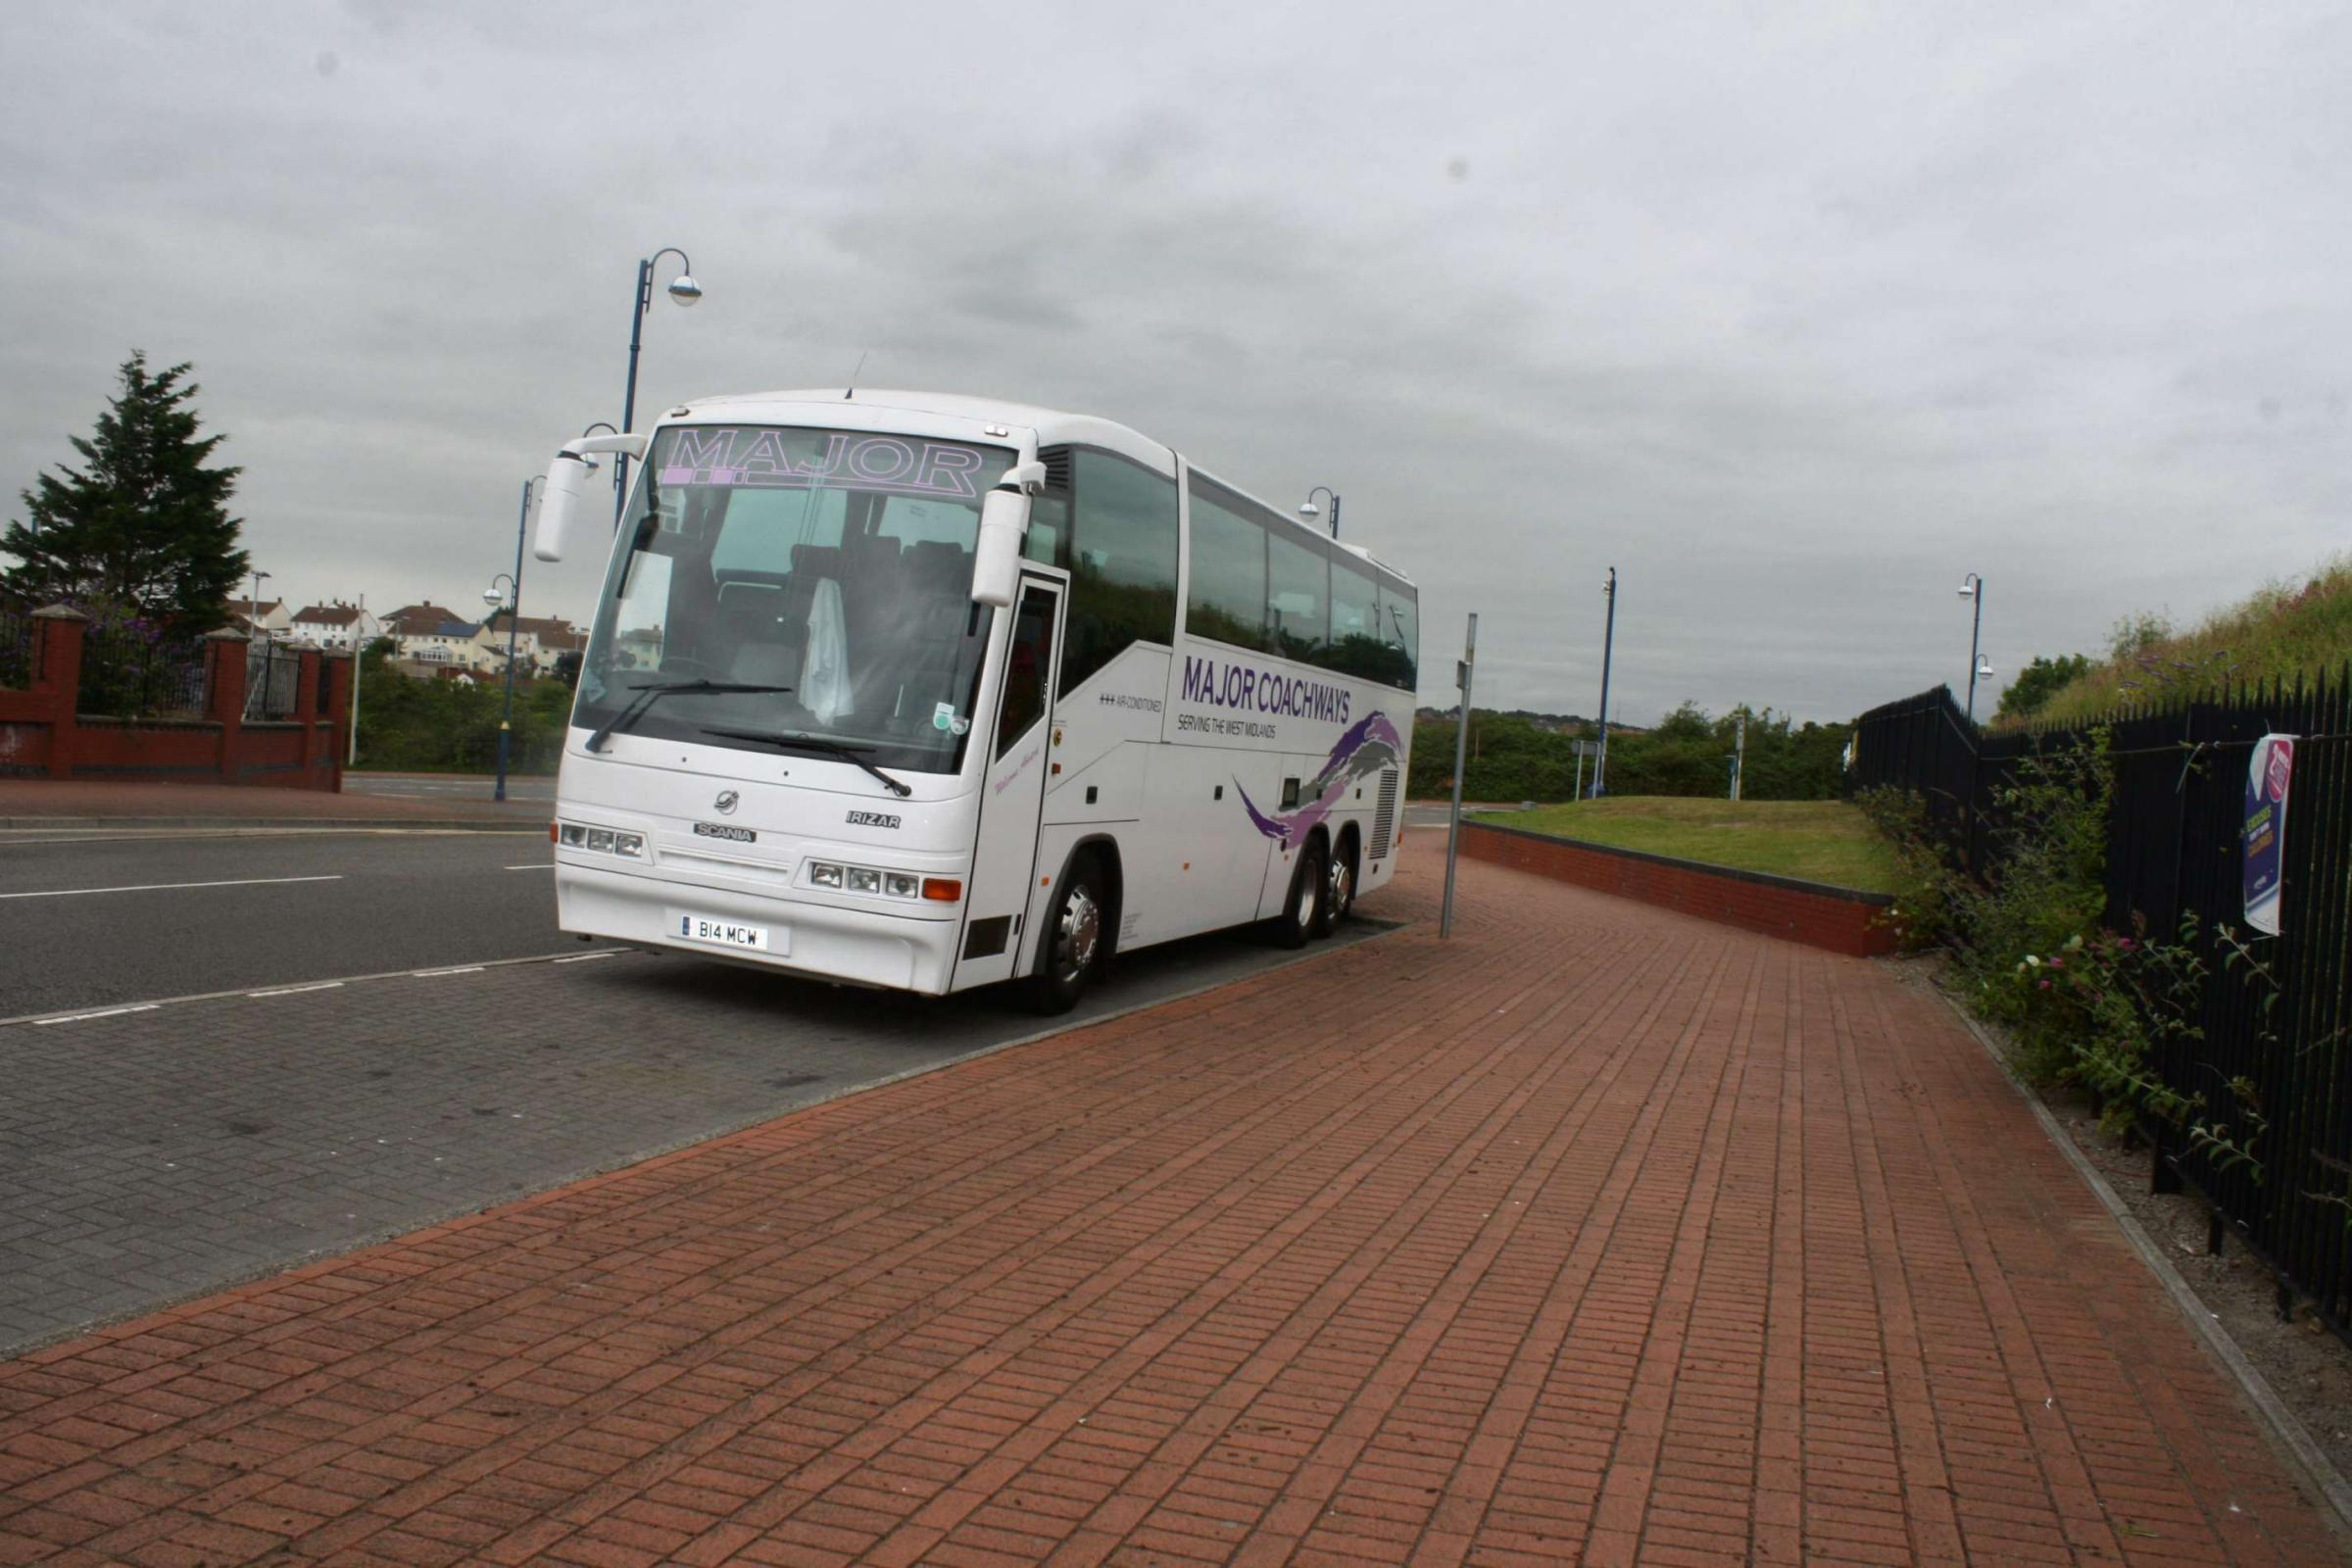 PARKING: A coach stops in the layby adjacent to the Nell's Point carpark with the driver asleep in the front passenger seat   (7973264)